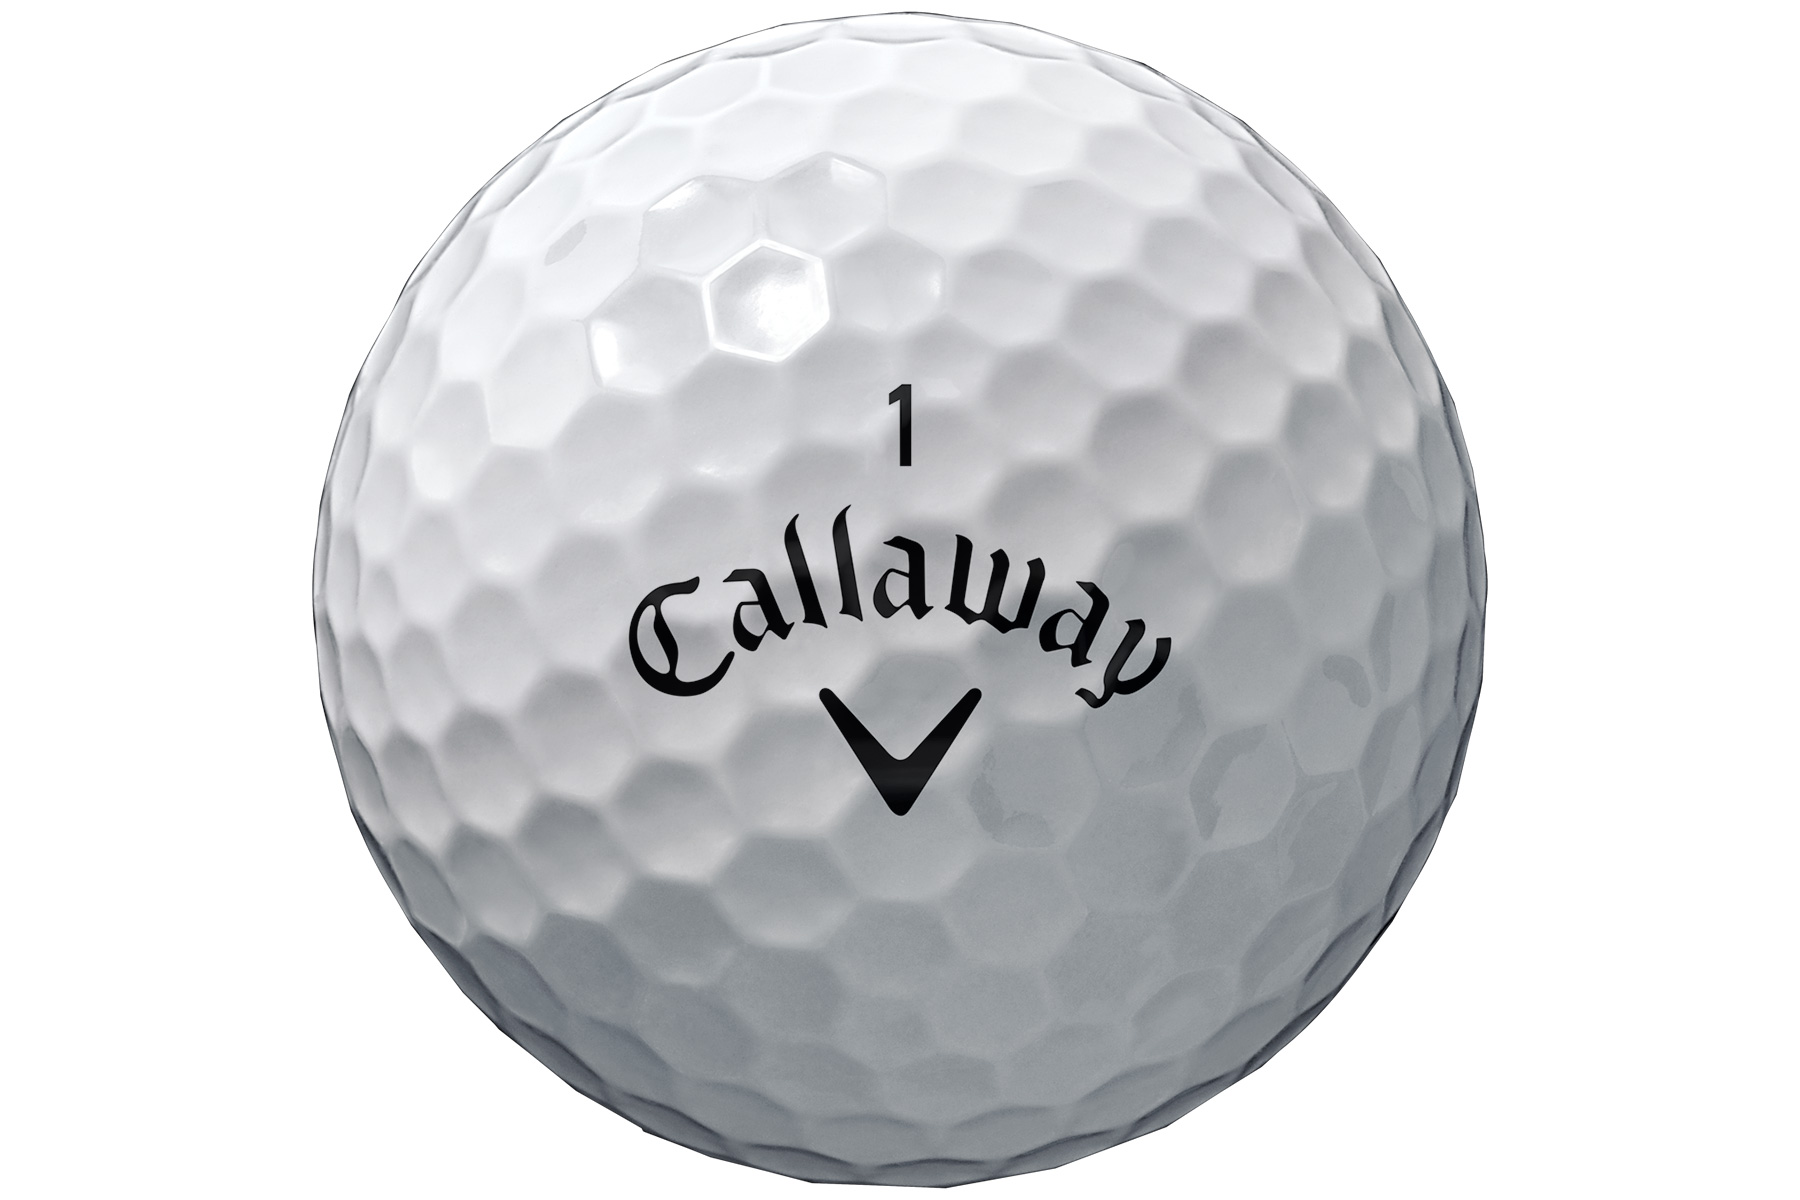 Callaway golf supersoft ball pack from american